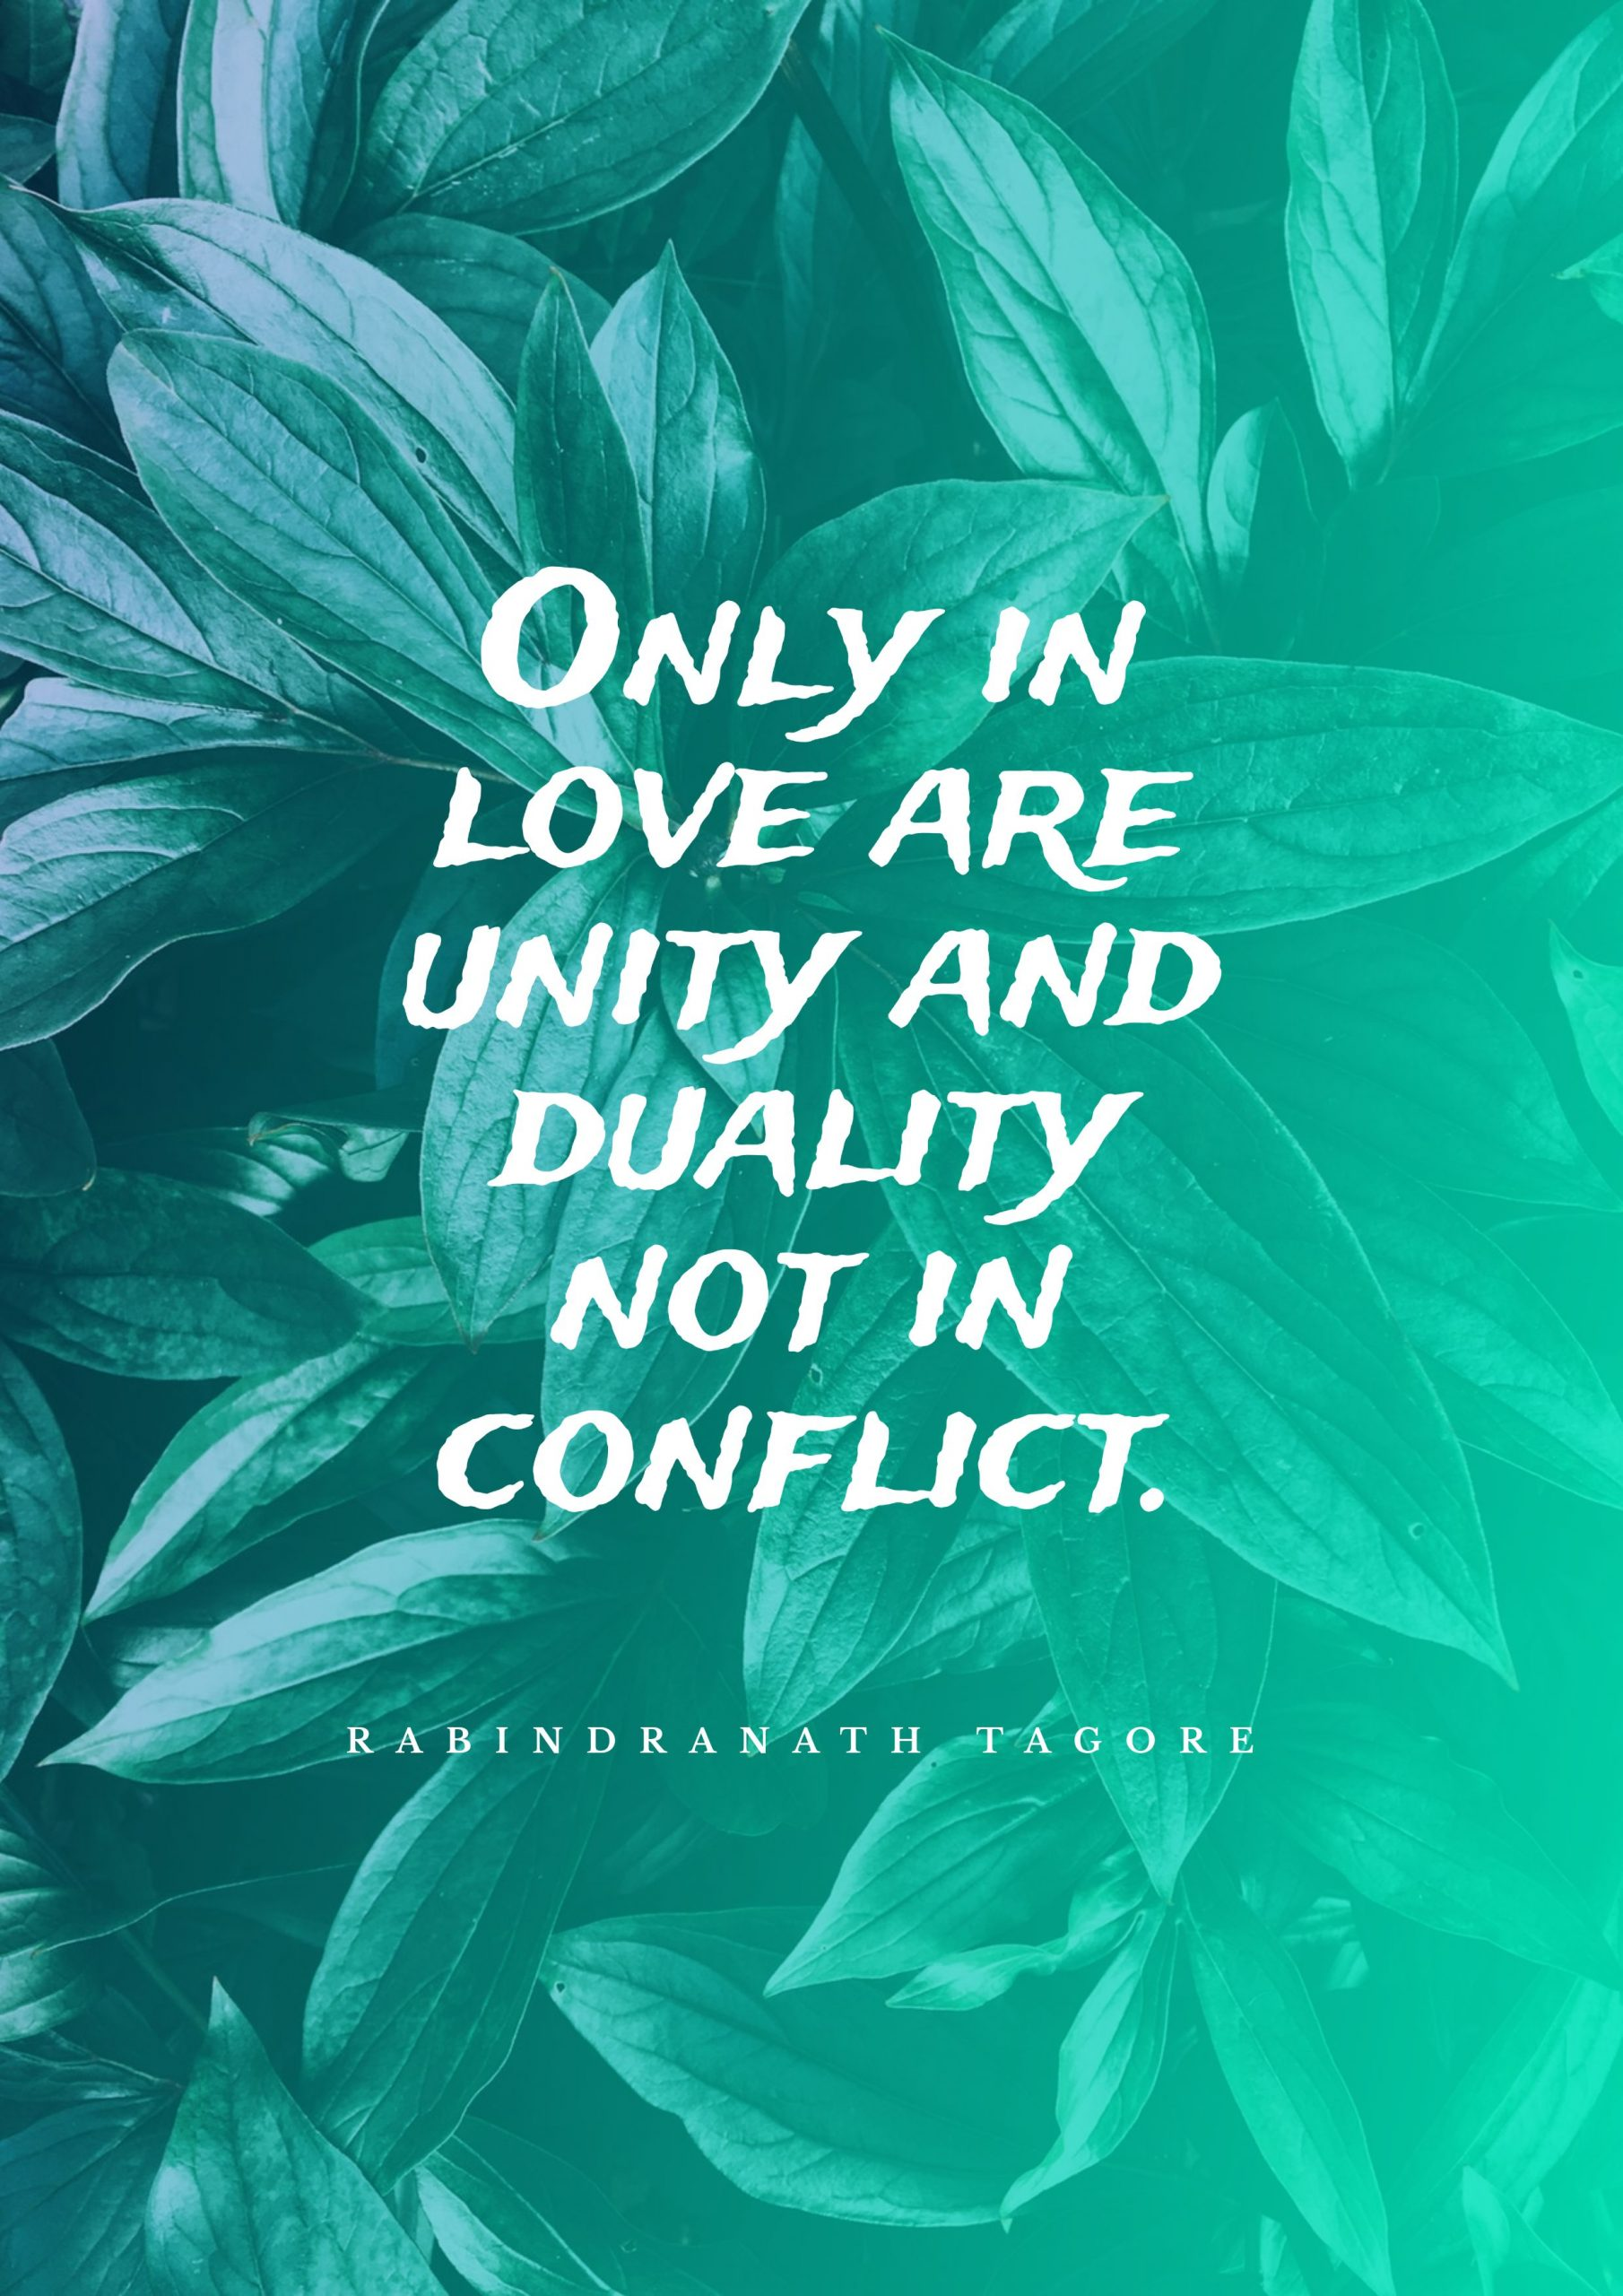 Quotes image of Only in love are unity and duality not in conflict.